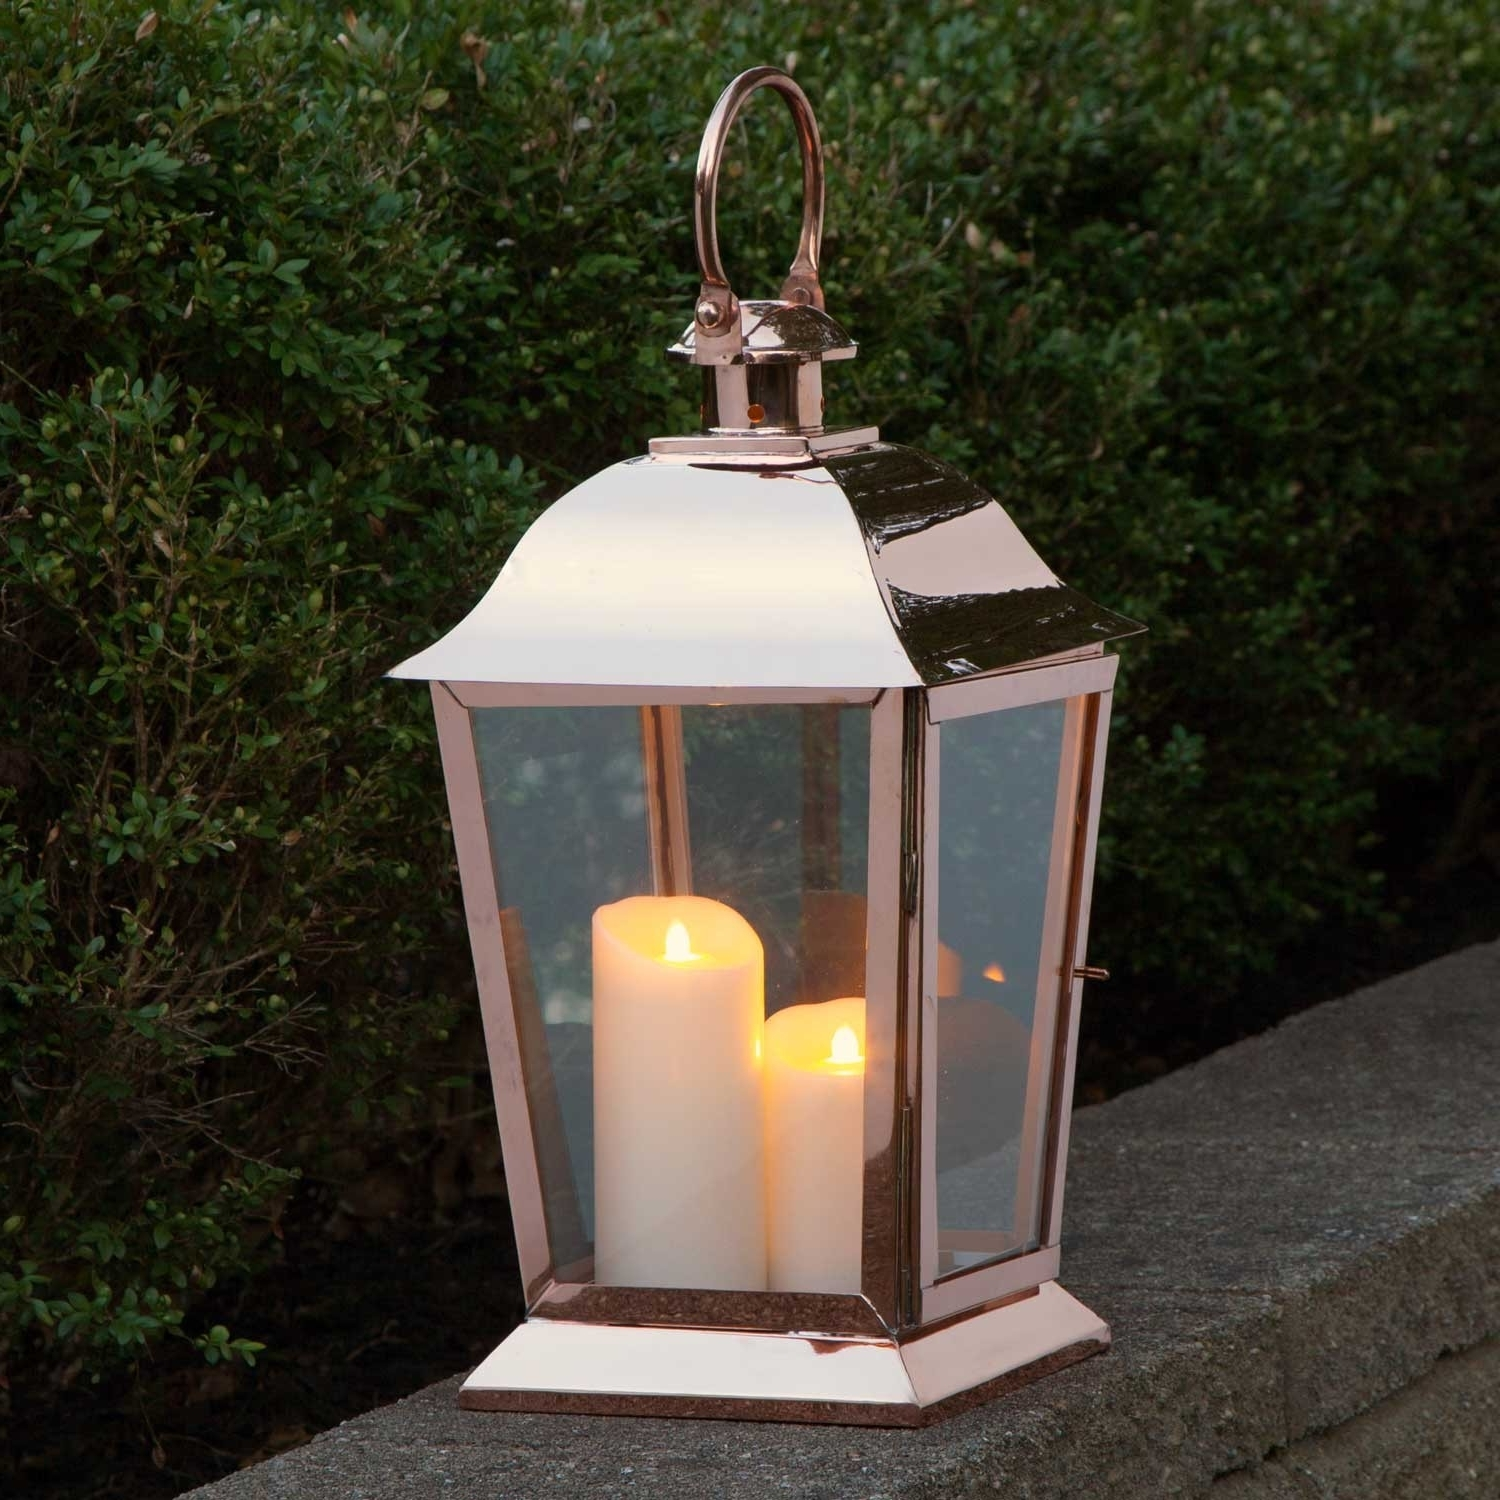 Pier One Lanterns Hanging With Candles Large Outdoor Rustic For Throughout Preferred Inexpensive Outdoor Lanterns (View 15 of 20)